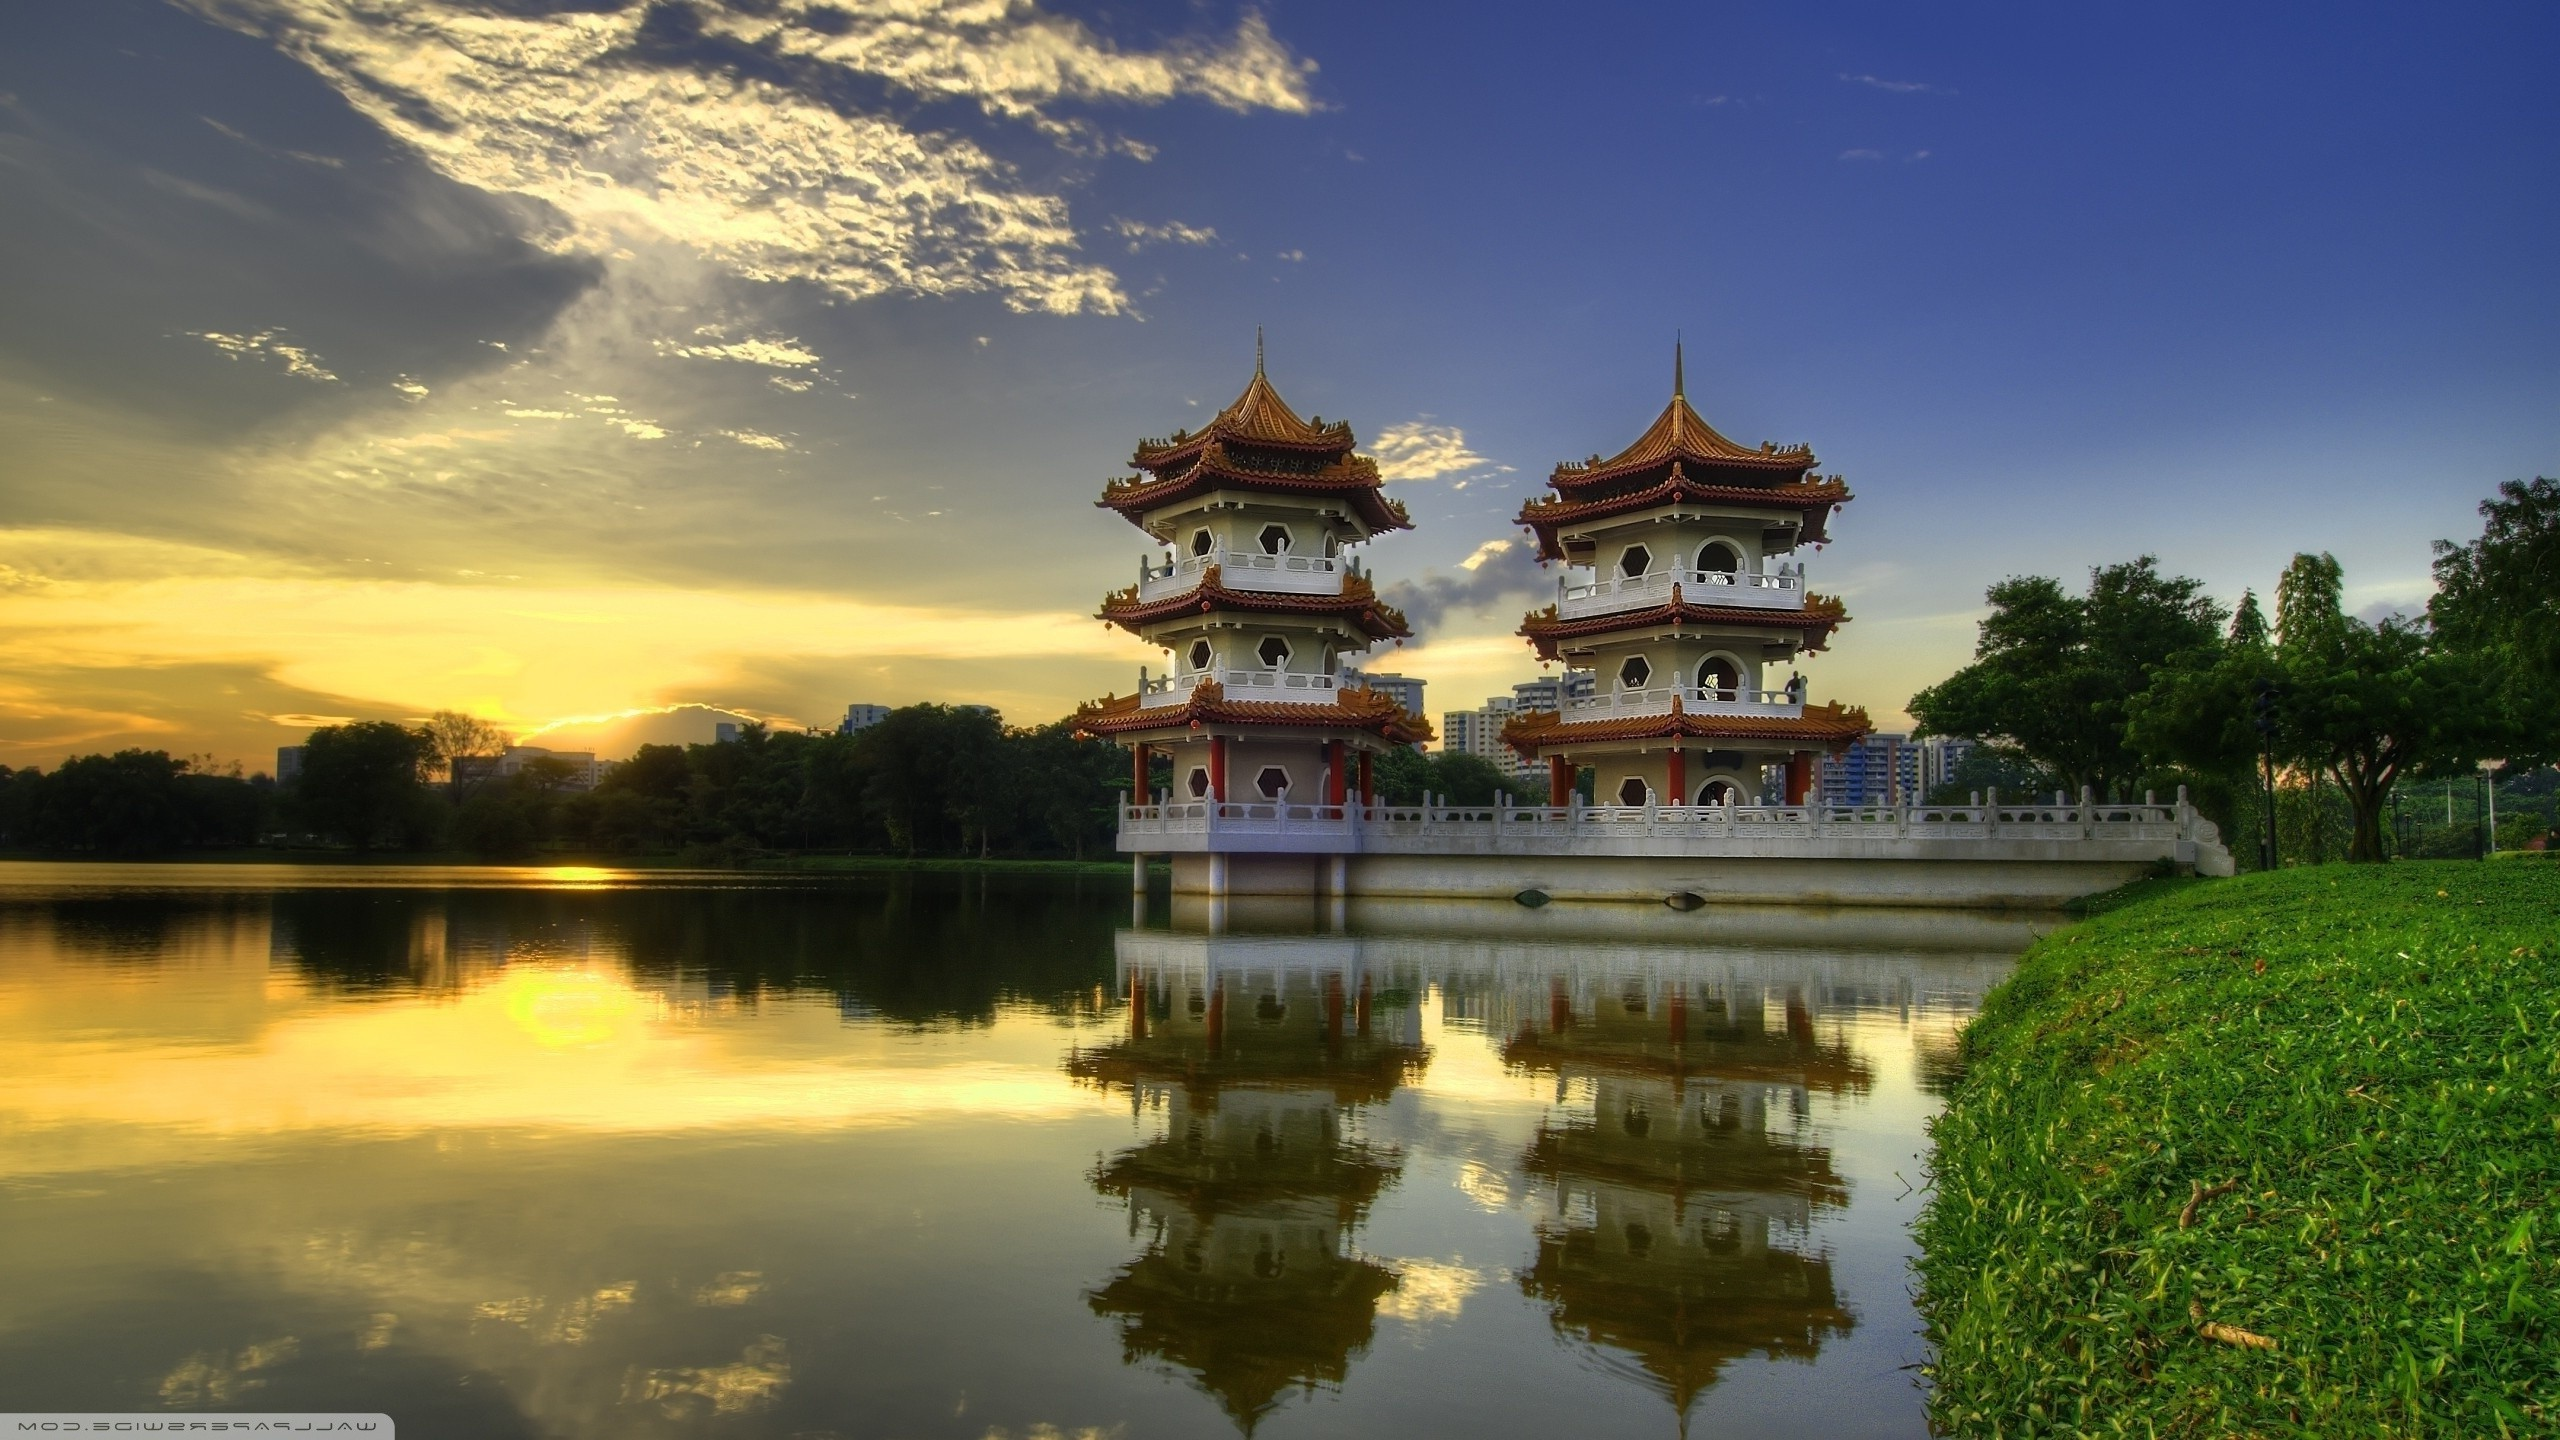 Res: 2560x1440, architecture, Nature, Landscape, Trees, Forest, Asian Architecture,  Singapore, Pagoda, Lake, Grass, Water, Reflection, Clouds, Sun Wallpapers HD  / Desktop ...